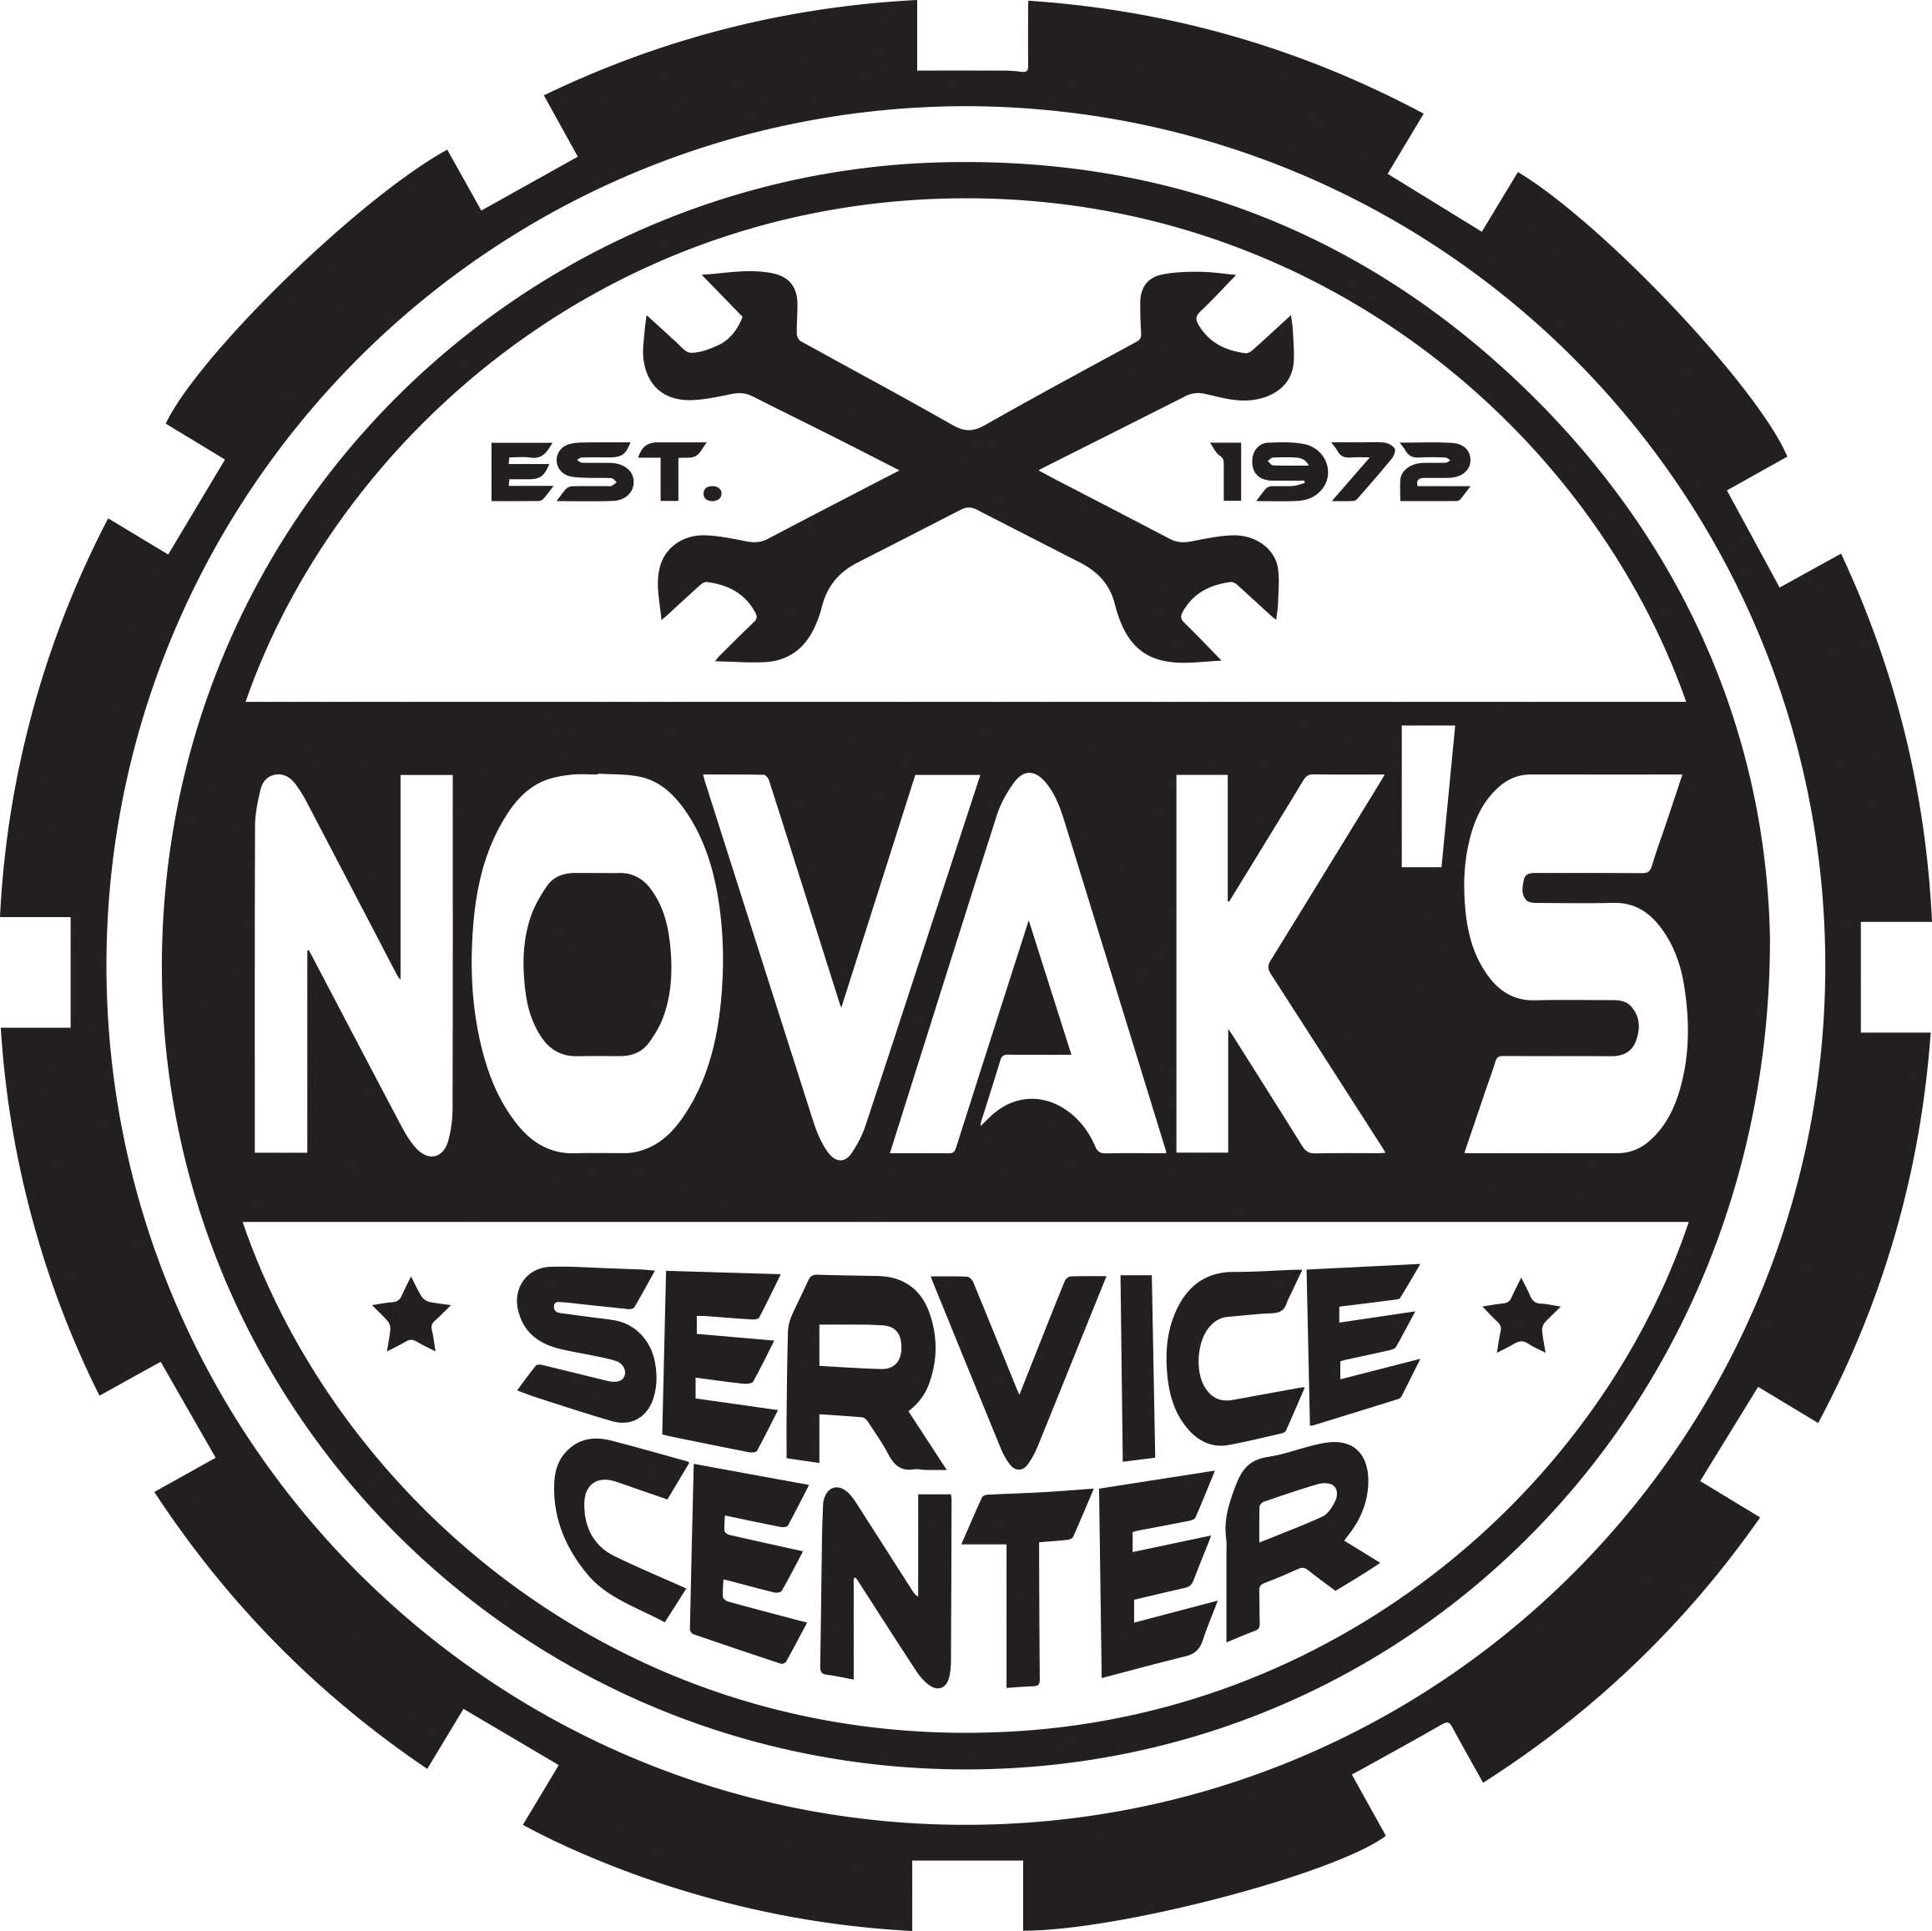 2-10-15 Novak's Service Center Black and White Logo.jpg